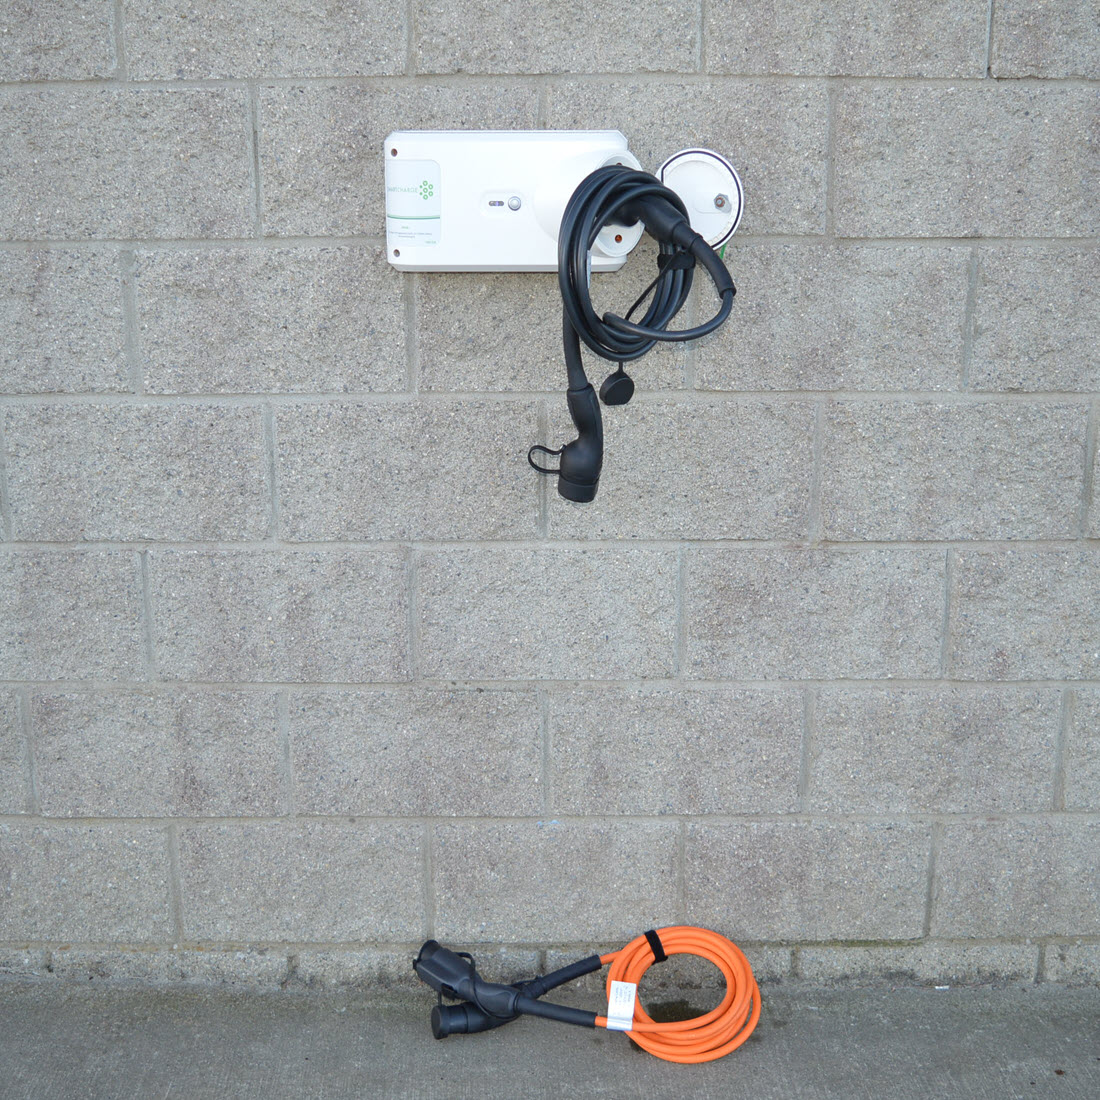 7kw Charger For Plug in Hybrids And Electric Vehicles